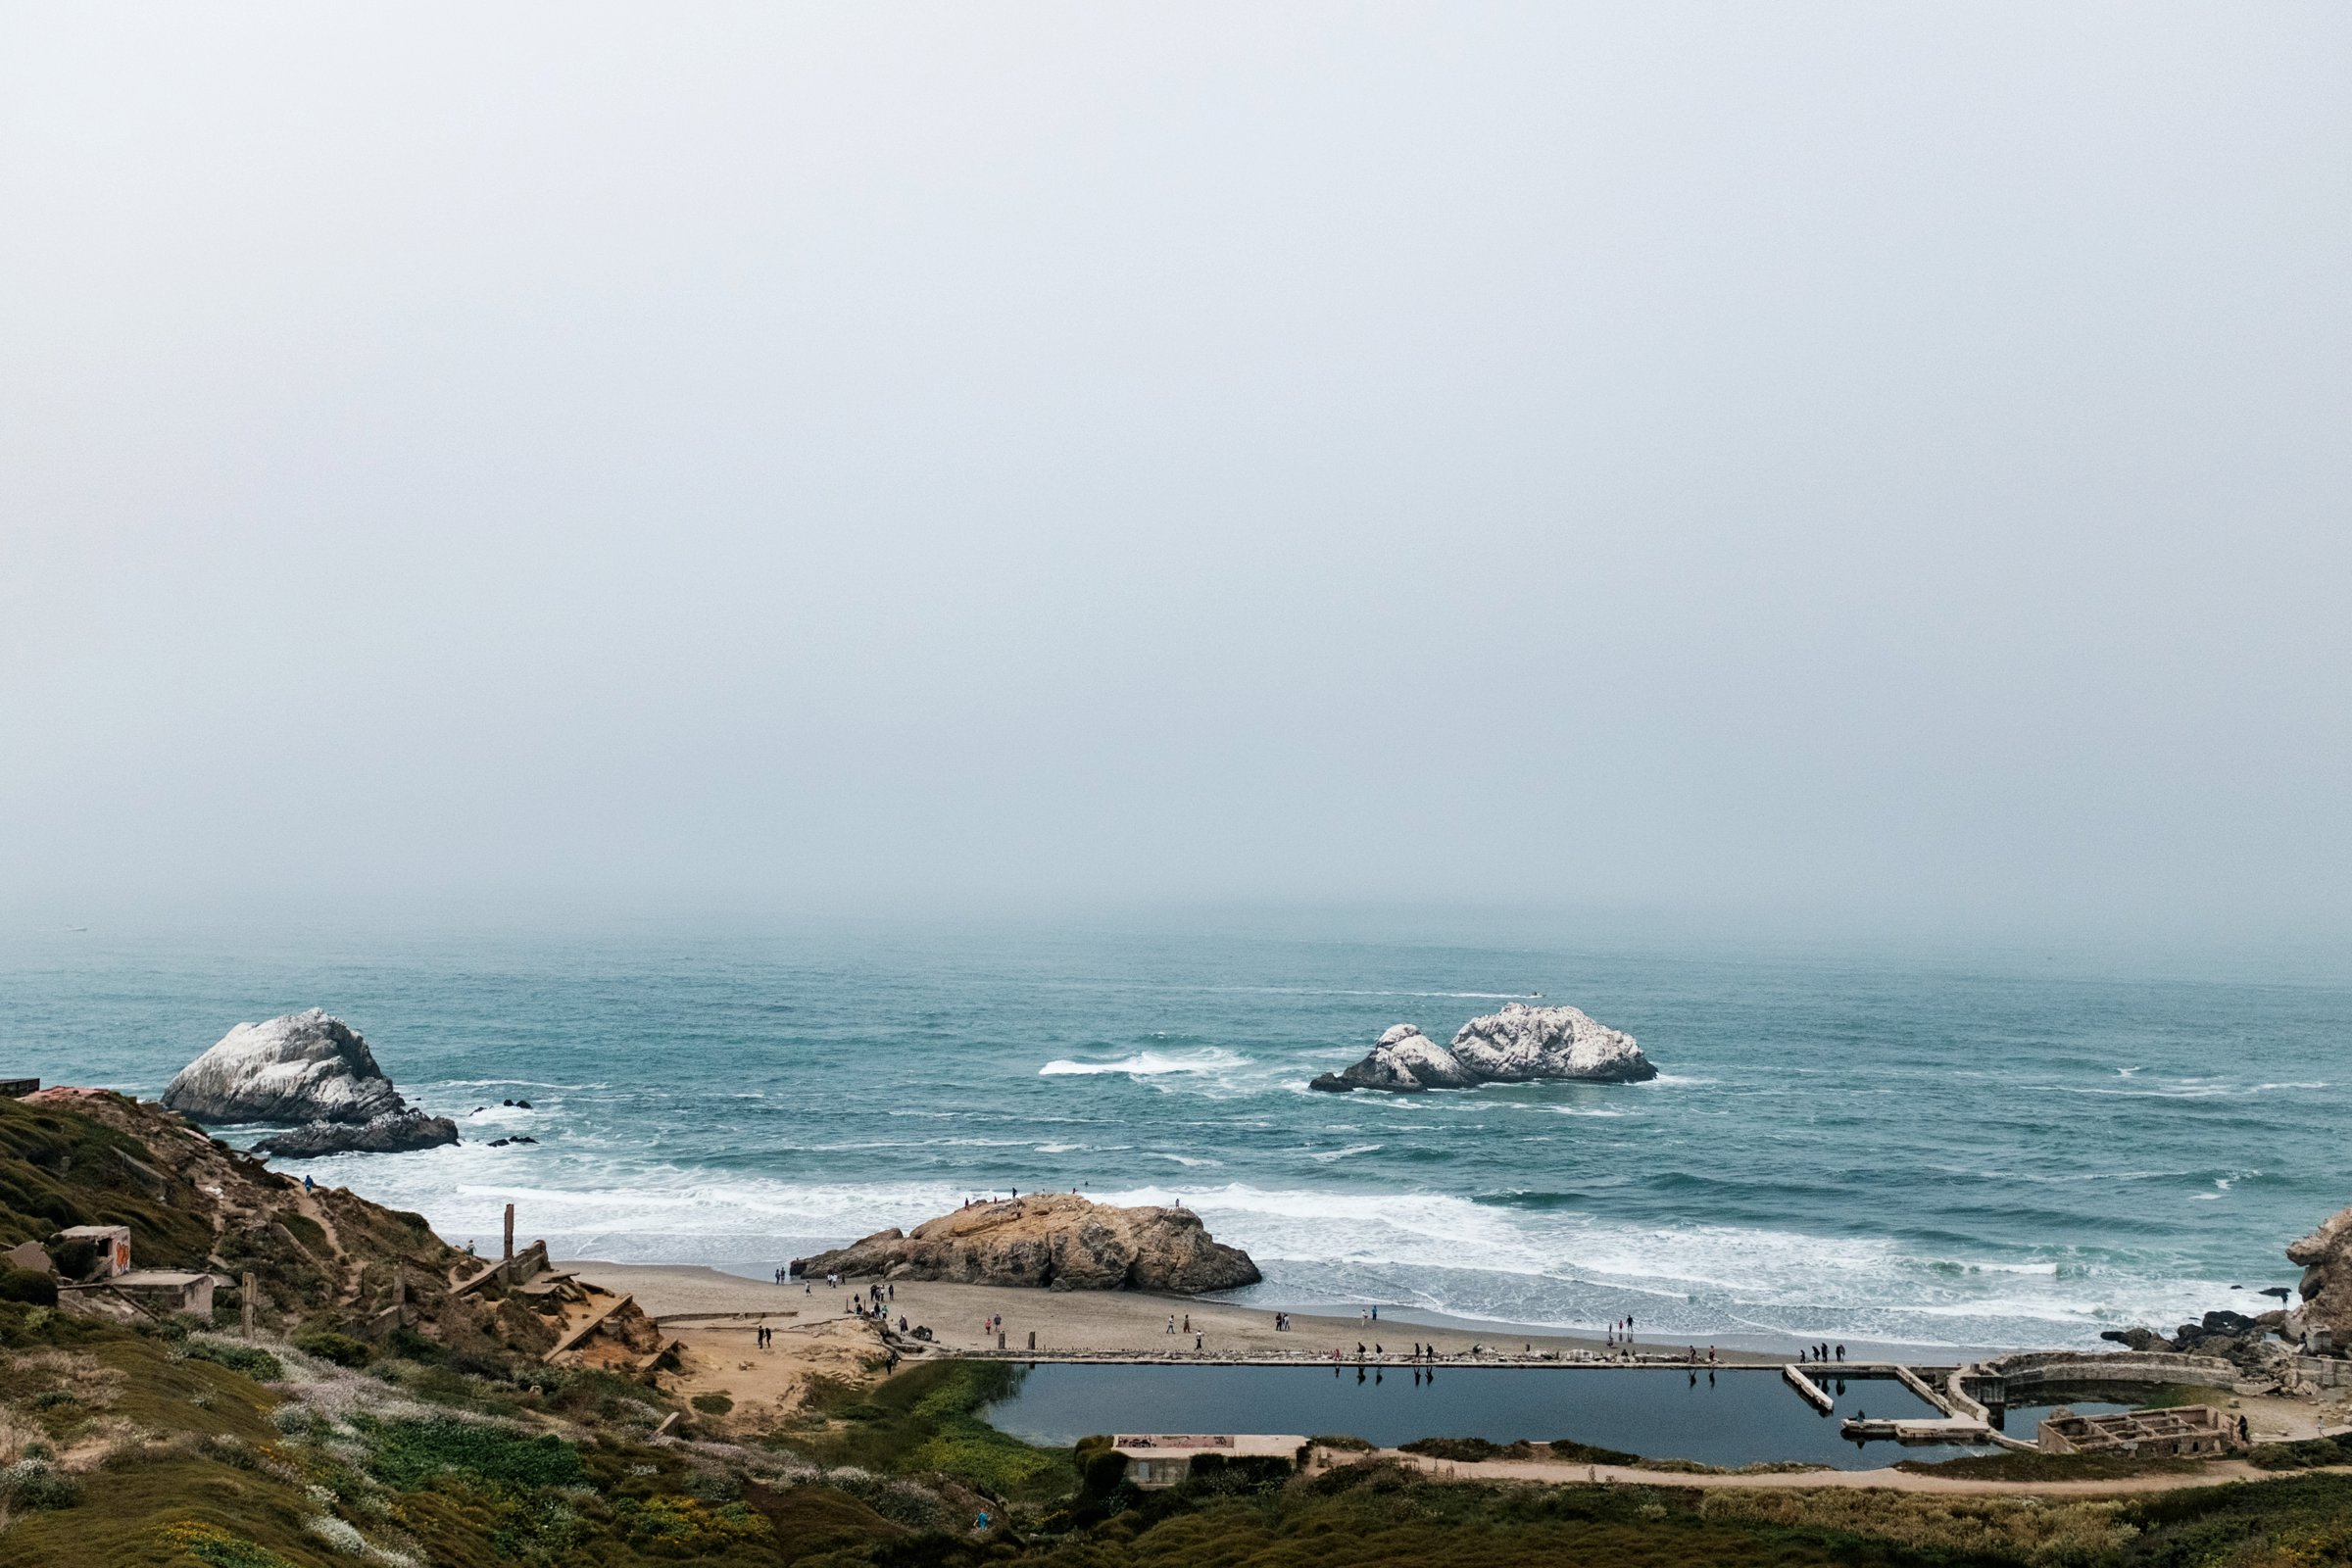 The Sutro Baths date back to 1896 and sit in ruins on Lands End